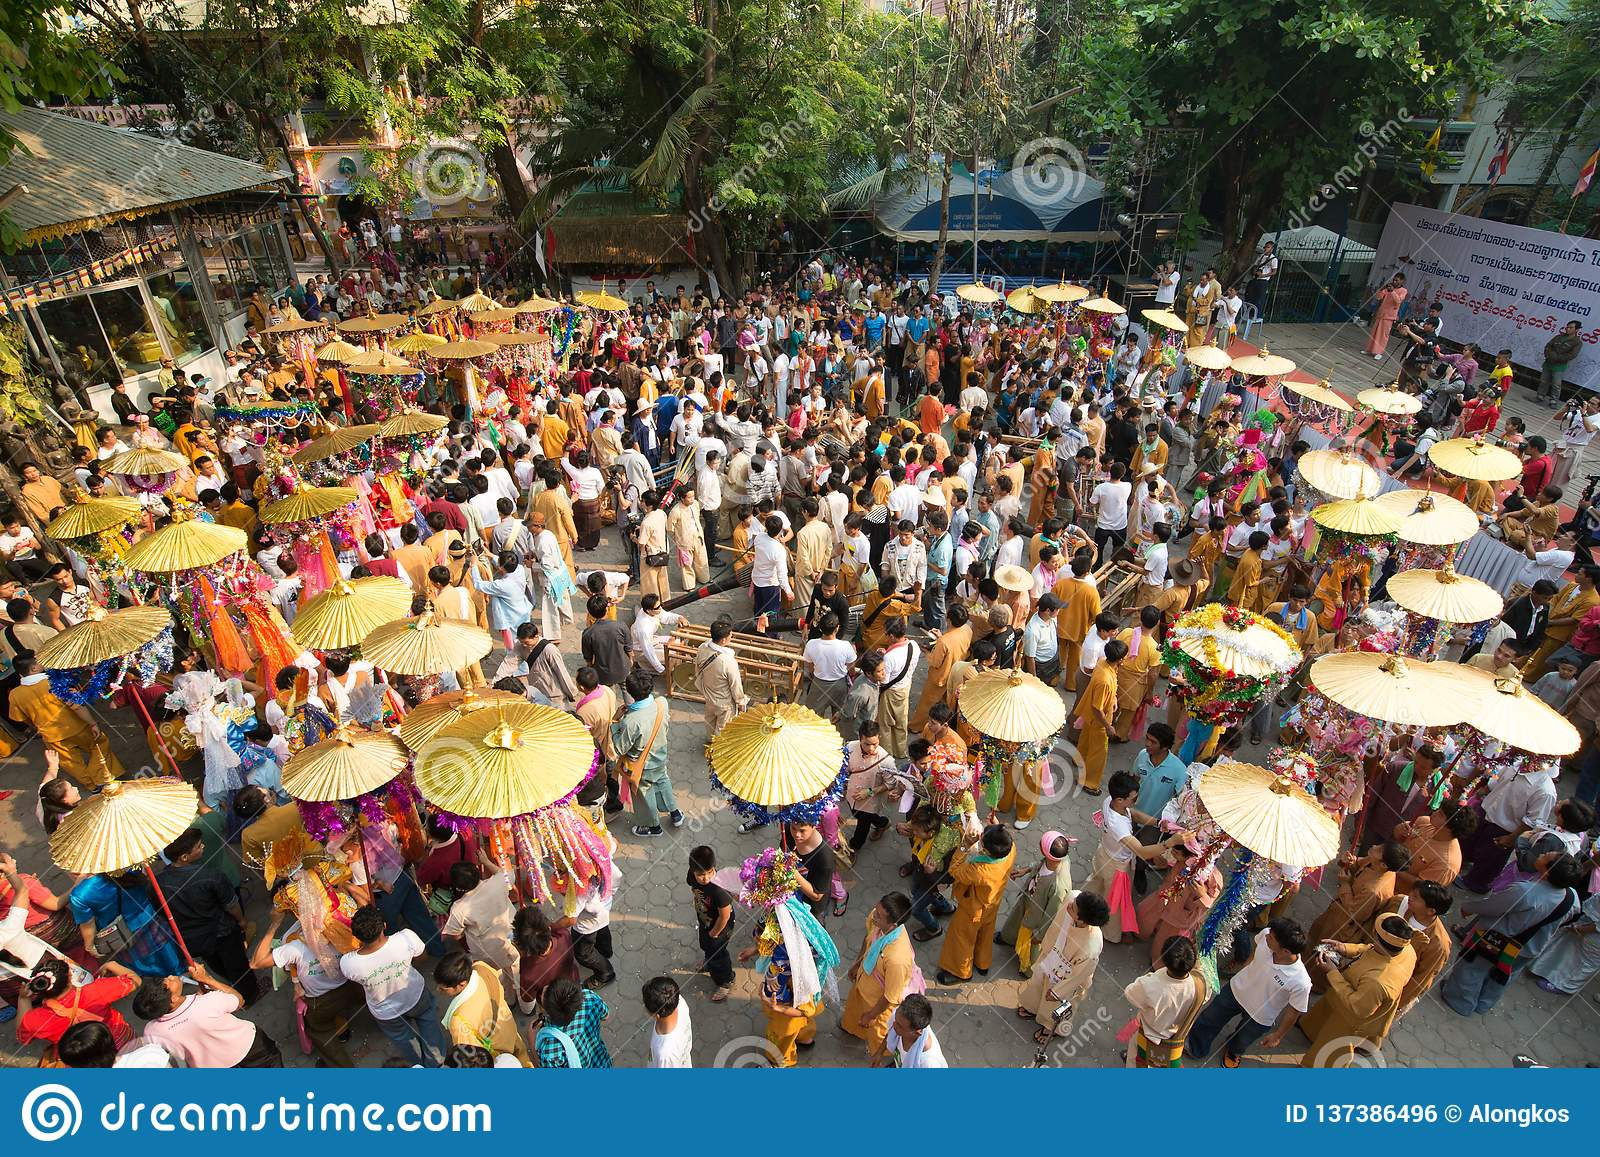 Poy Sang Long festival, A Ceremony of boys to become novice monk, In parade around temple in Chiang mai, Thailand